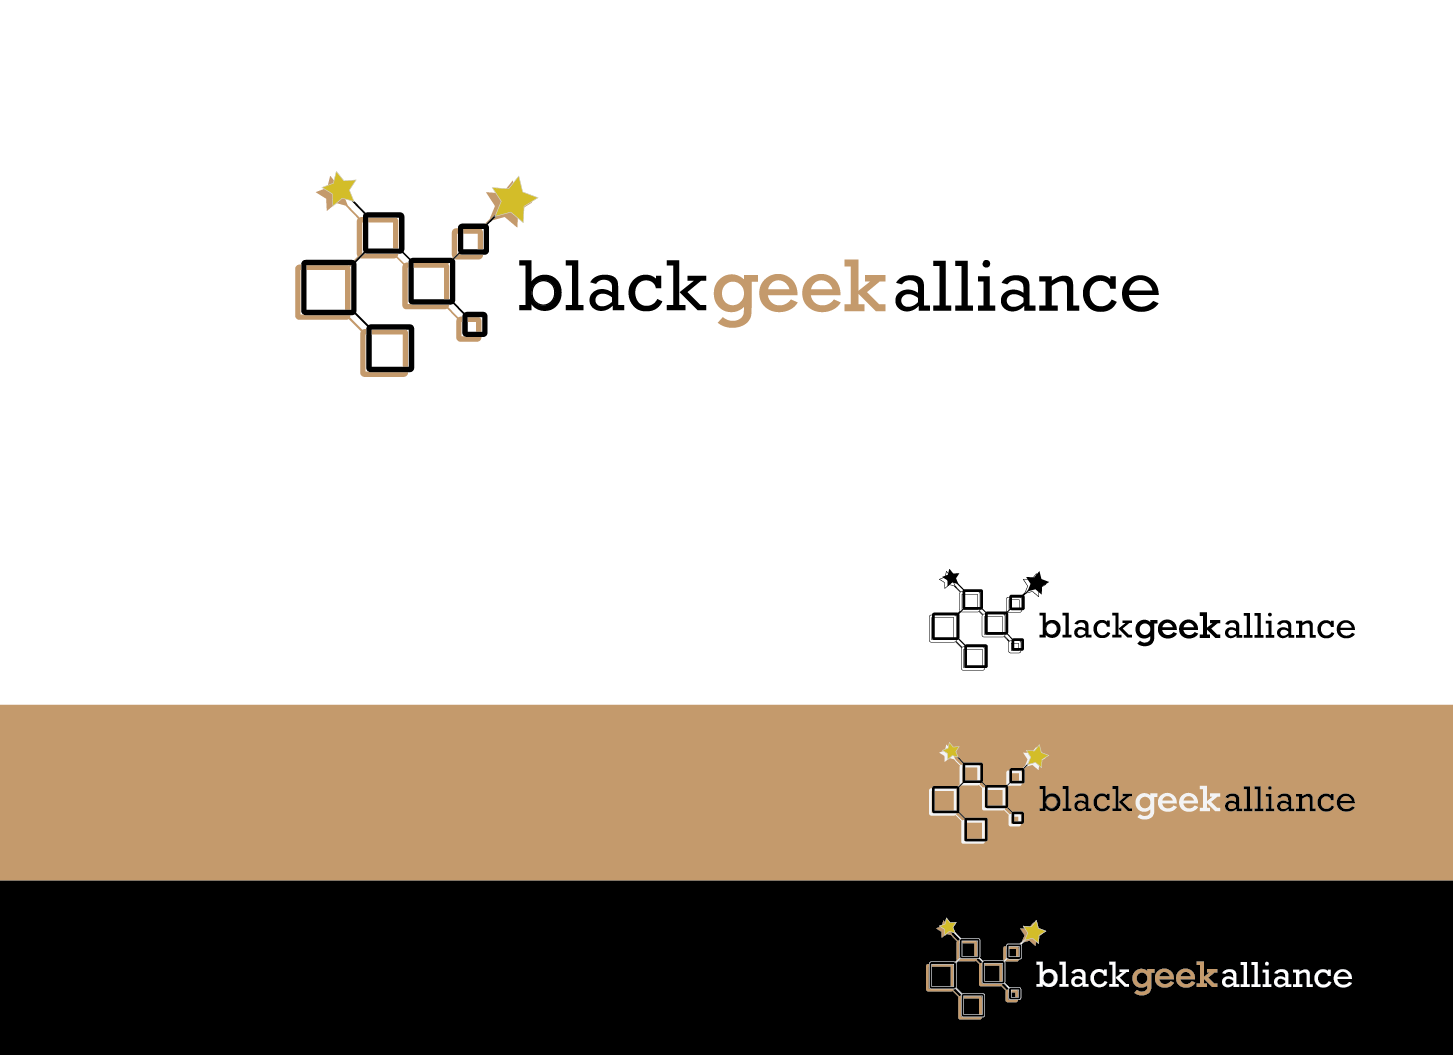 Hip logo for a geek alliance - Blogging Logo